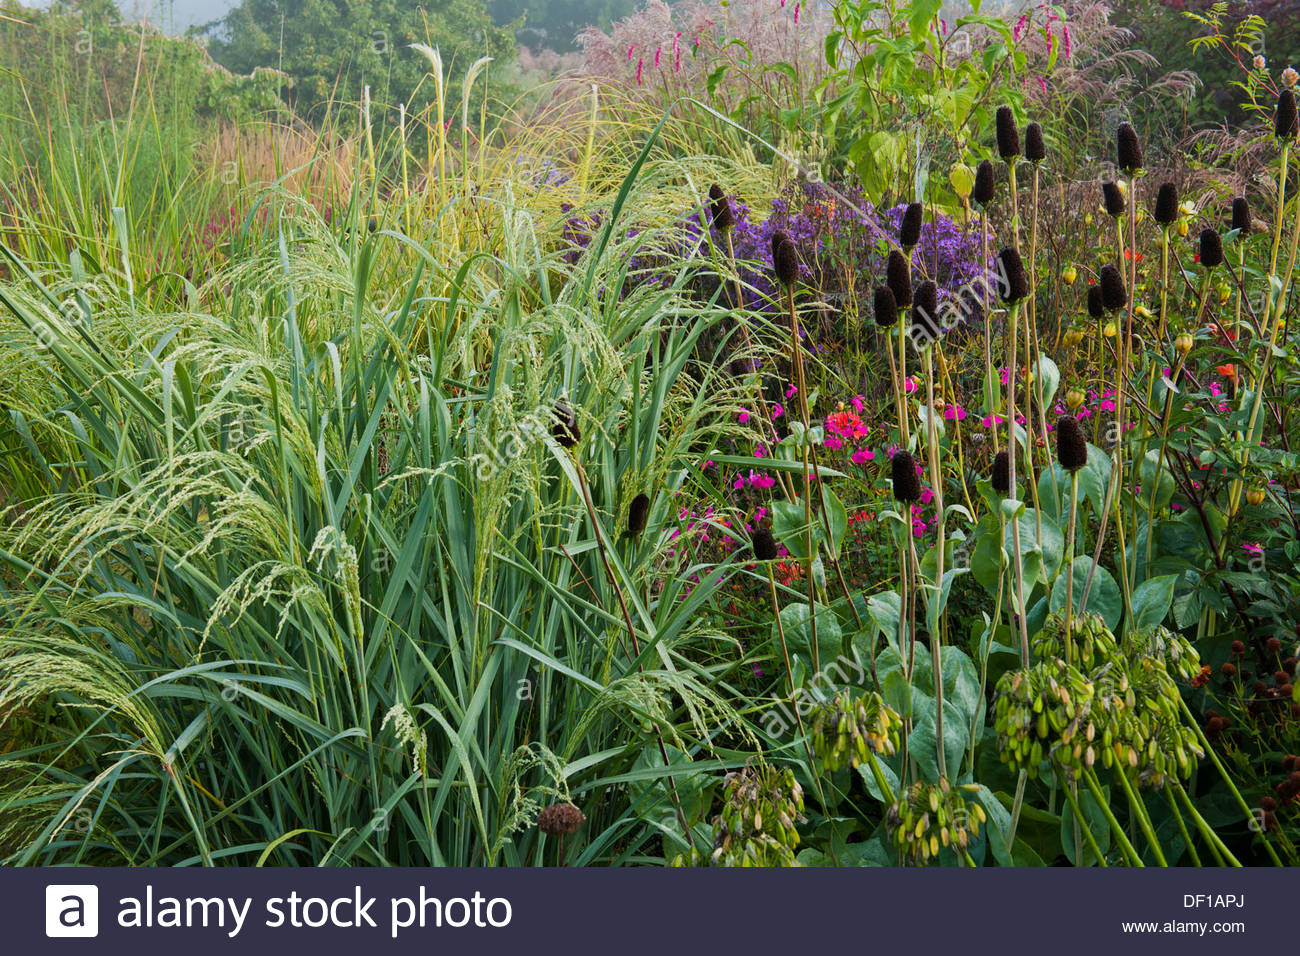 bitter panicgrass switch grass Panicum amarum Dewey Blue giant coneflower black-eyed Susan Rudbeckia maxima autumn fall borders - Stock Image